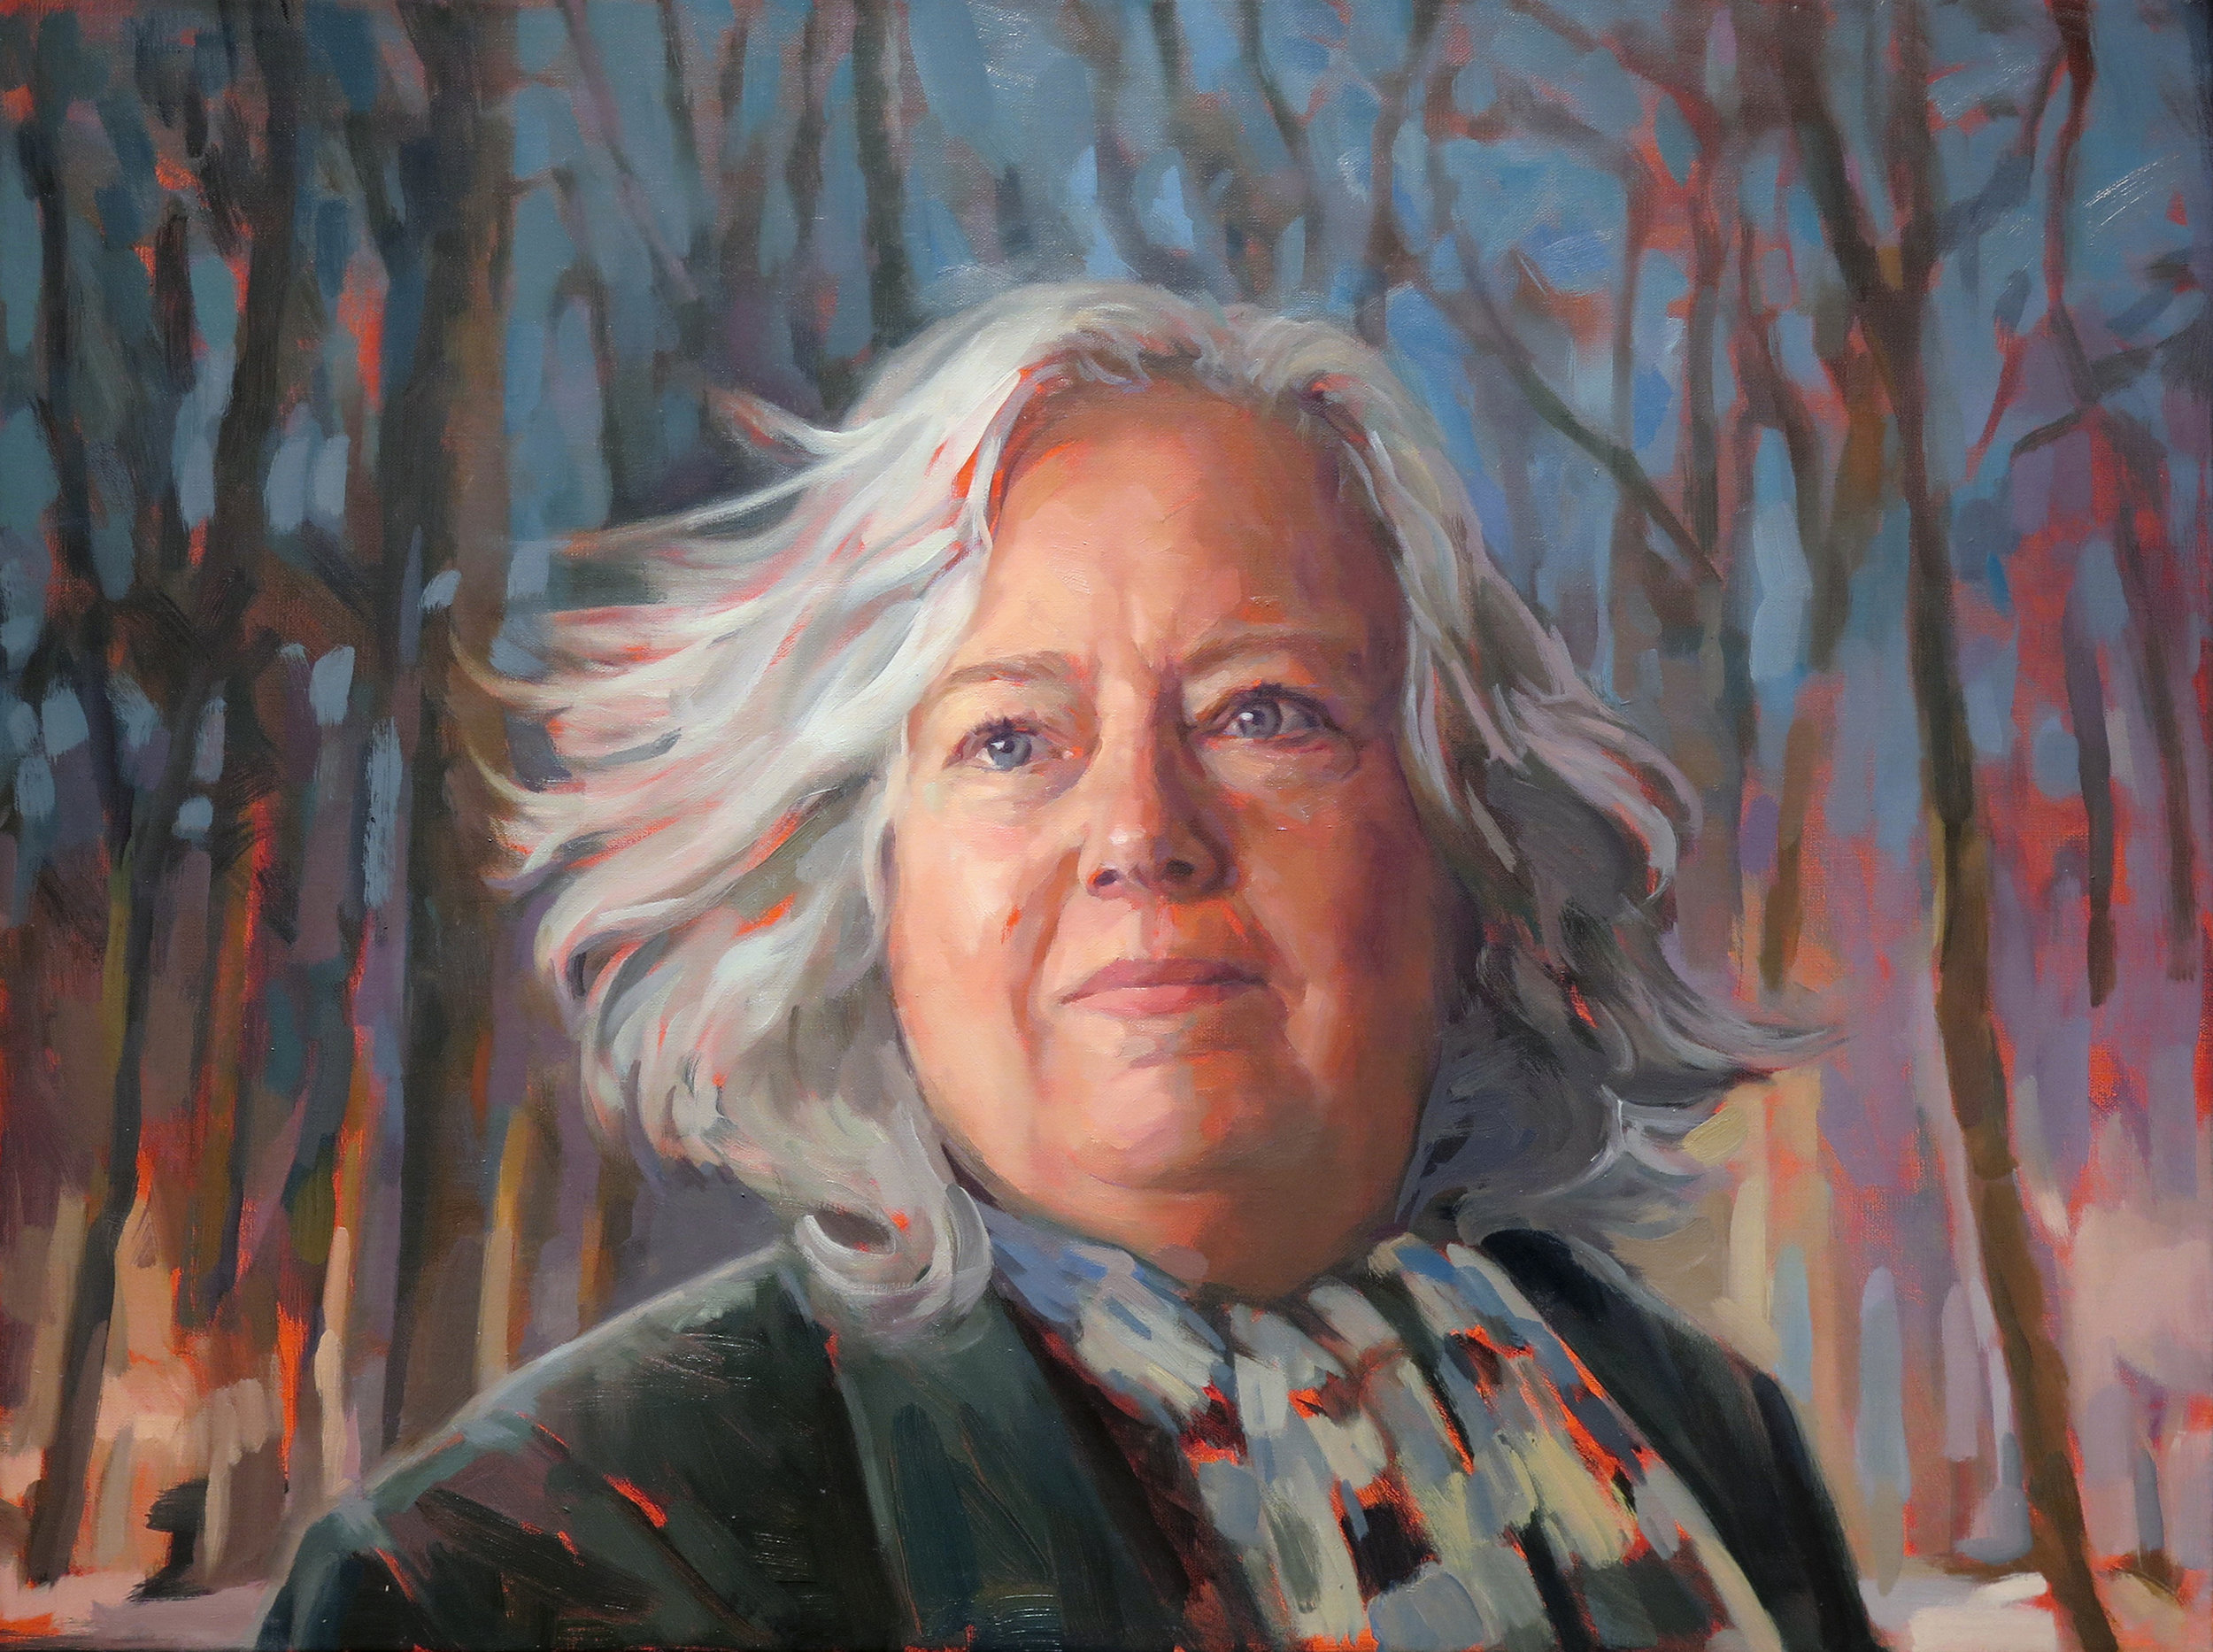 "Johnnie Snow , oil on canvas, 36"" x 72"", 2016   Painter  Johnnie Sielbeck  and I paint together weekly at the studio of Jennifer Balkan. This portrait was created for the  Painters Painting Painters  exhibition at Davis Gallery in fall of 2016. Each artist was assigned in the exhibition was assigned to paint two other artists, as well as a self-portrait. In this painting Johnnie is the hero of a yet to be written movie."